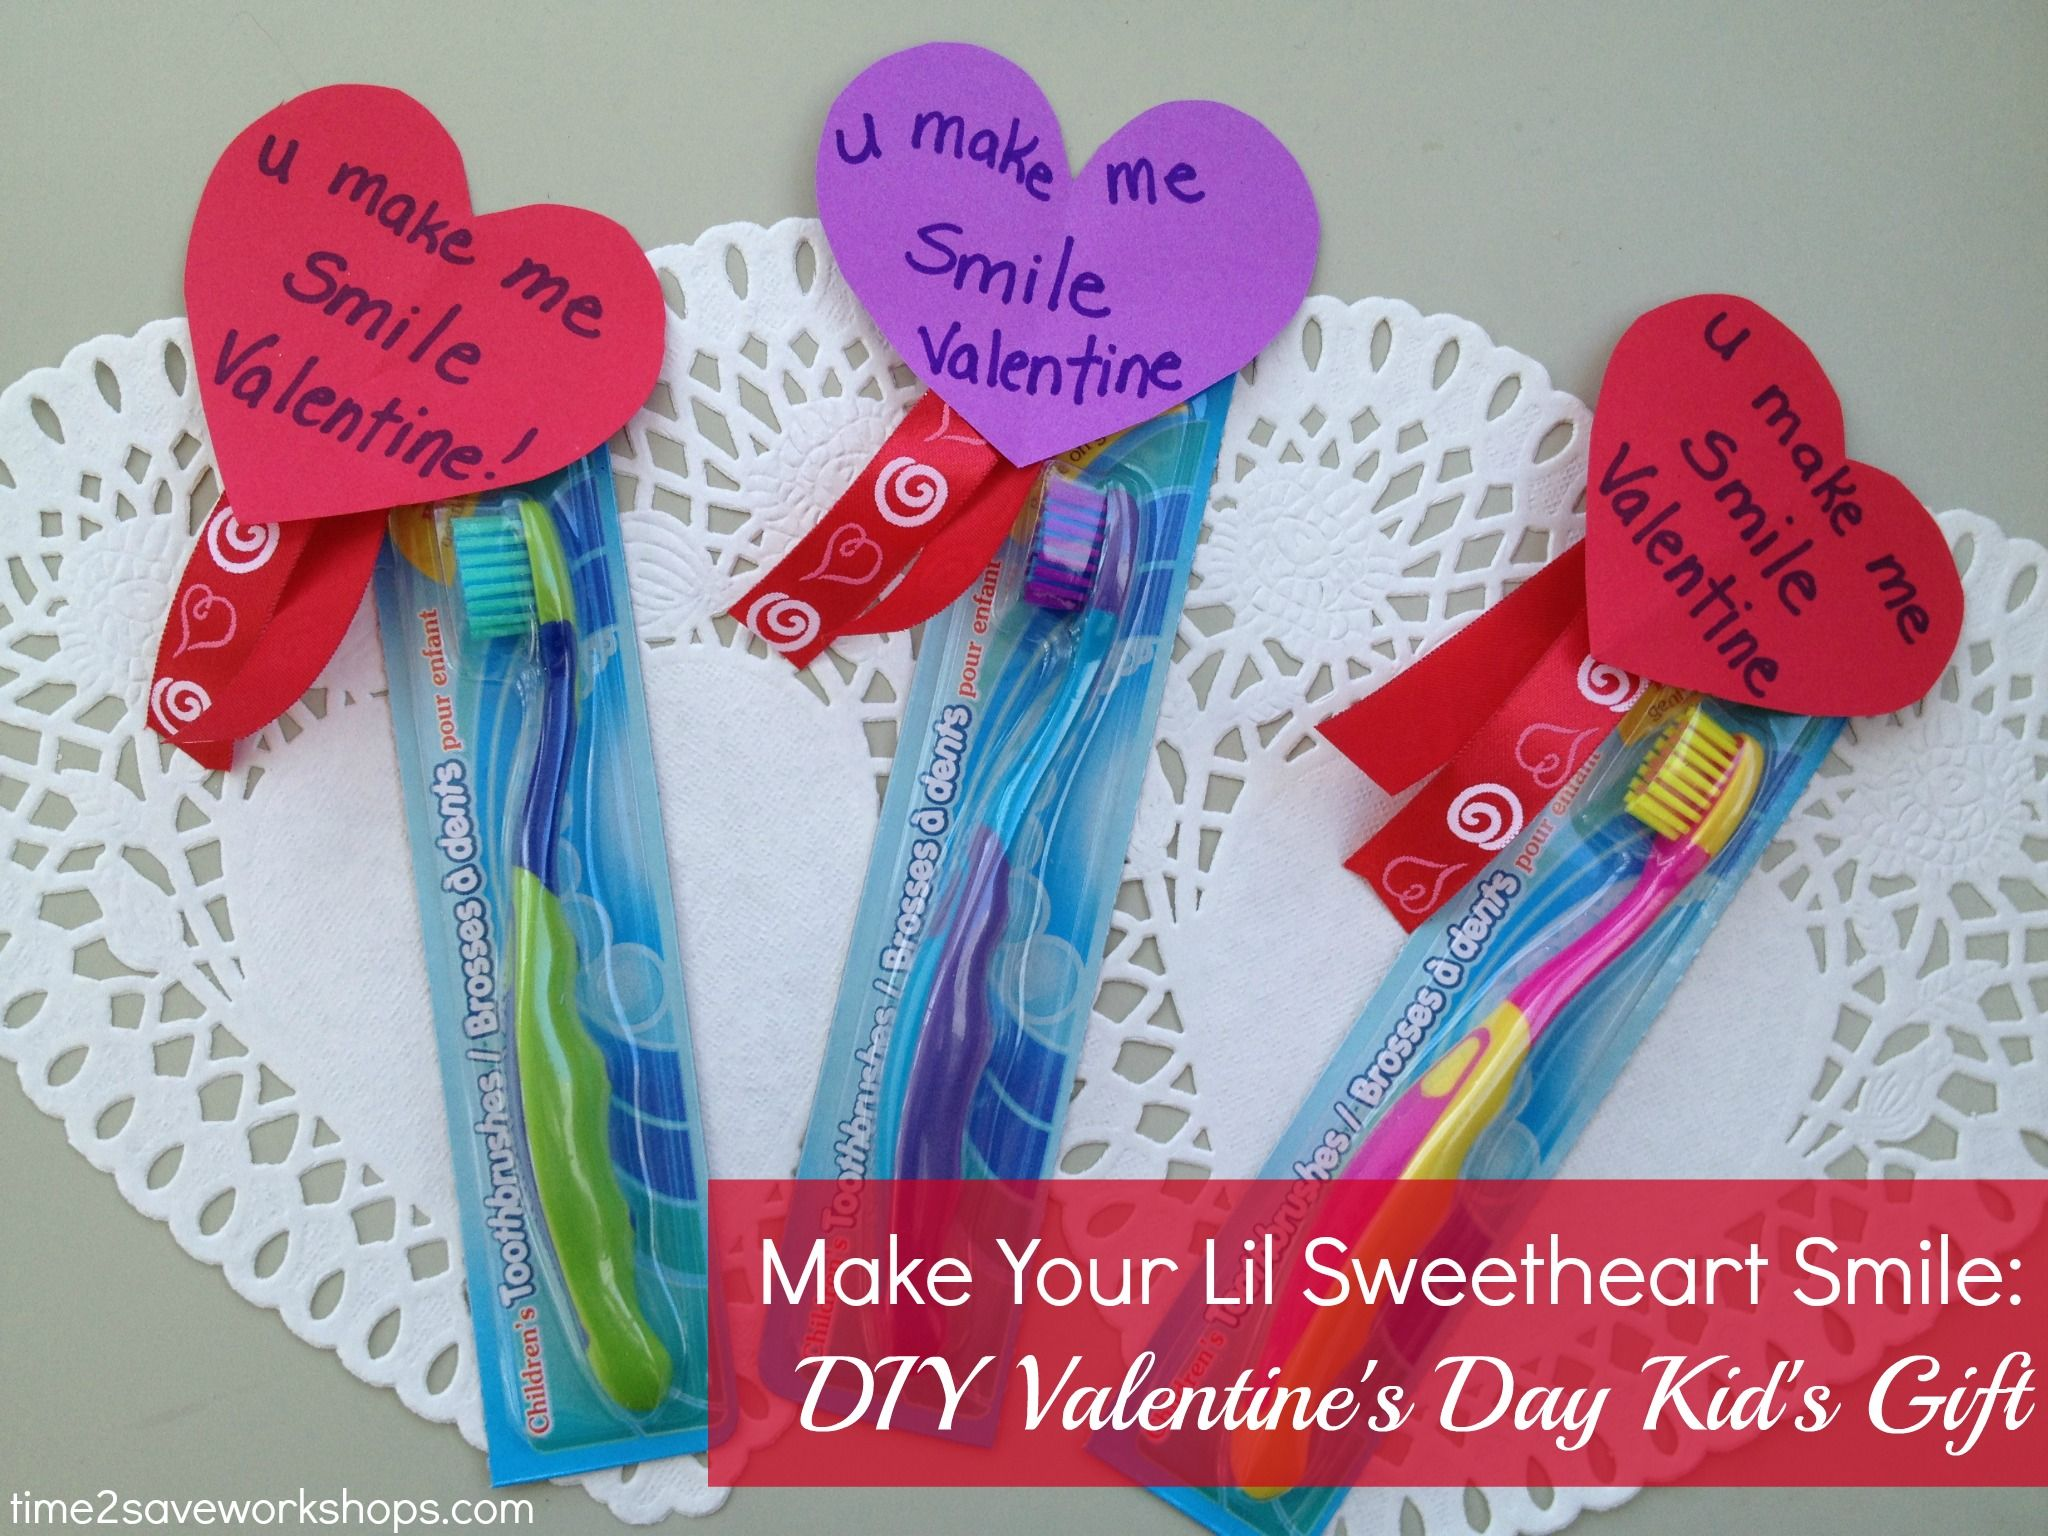 Valentineu0027s Gifts For Kids: Make Your Lil Sweetheart Smile ... Valentineu0027s  Gifts For Kids Make Your Lil Sweetheart Smile